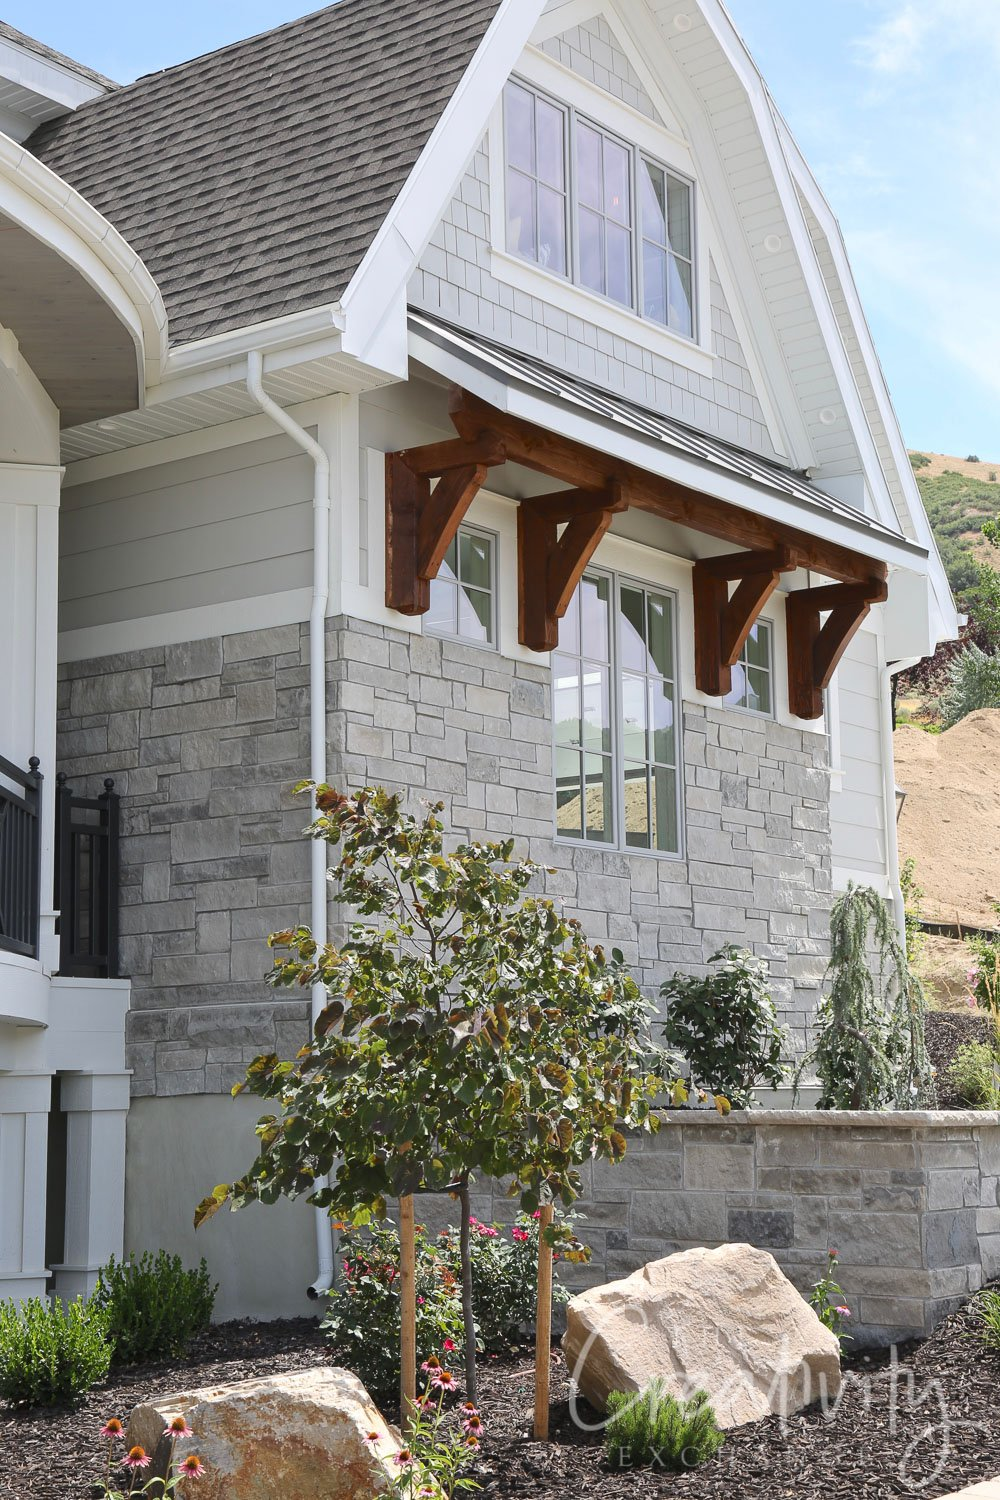 Wood and metal exterior window awnings